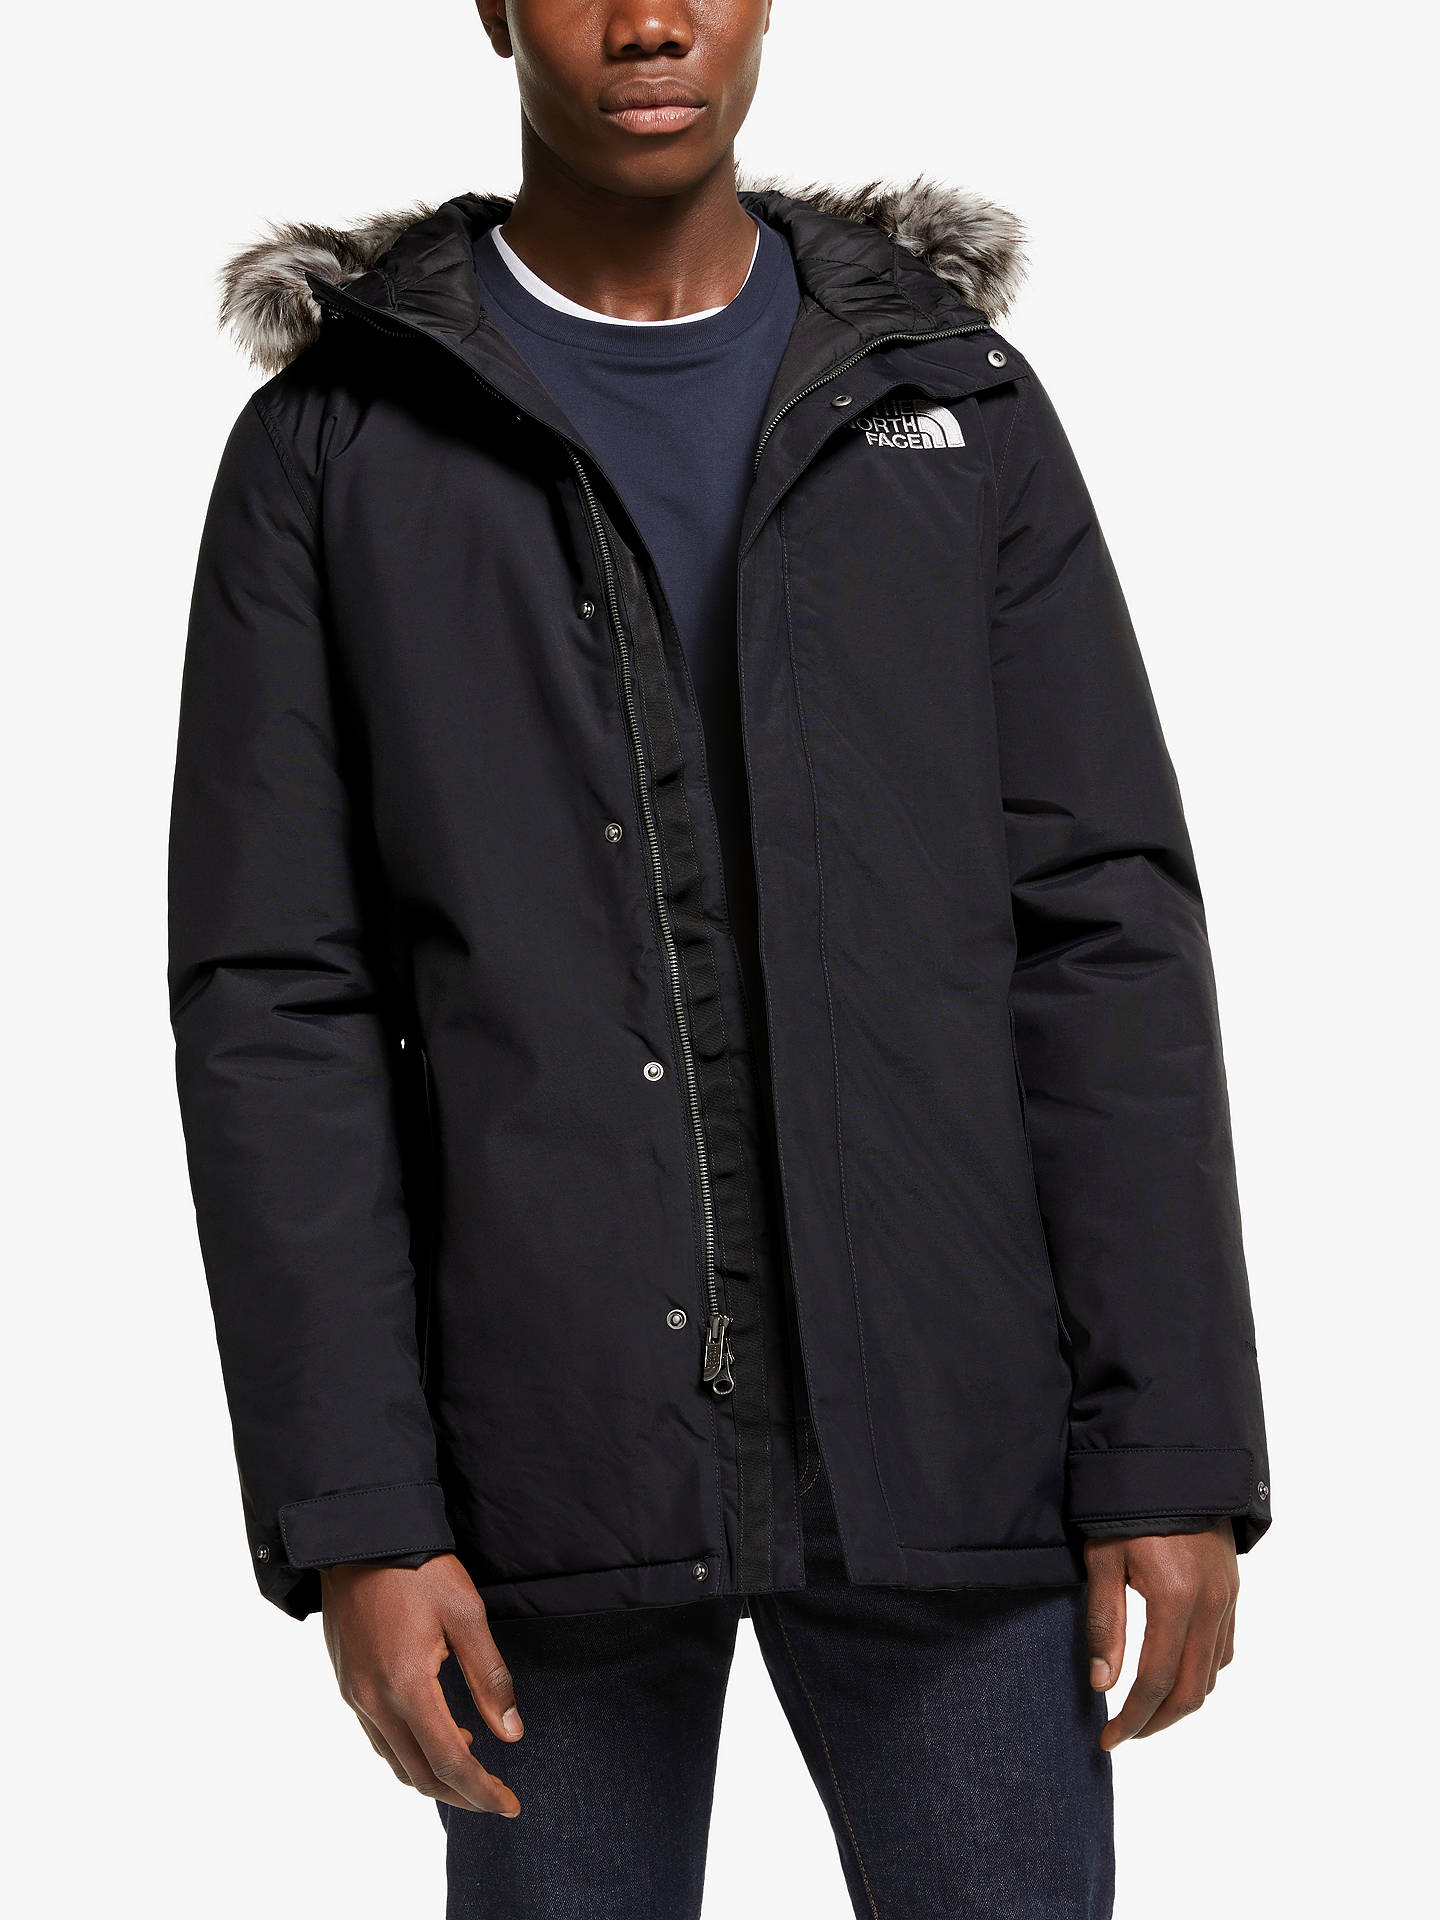 2a5ad18b6 The North Face Zaneck Men's Jacket, Black at John Lewis & Partners